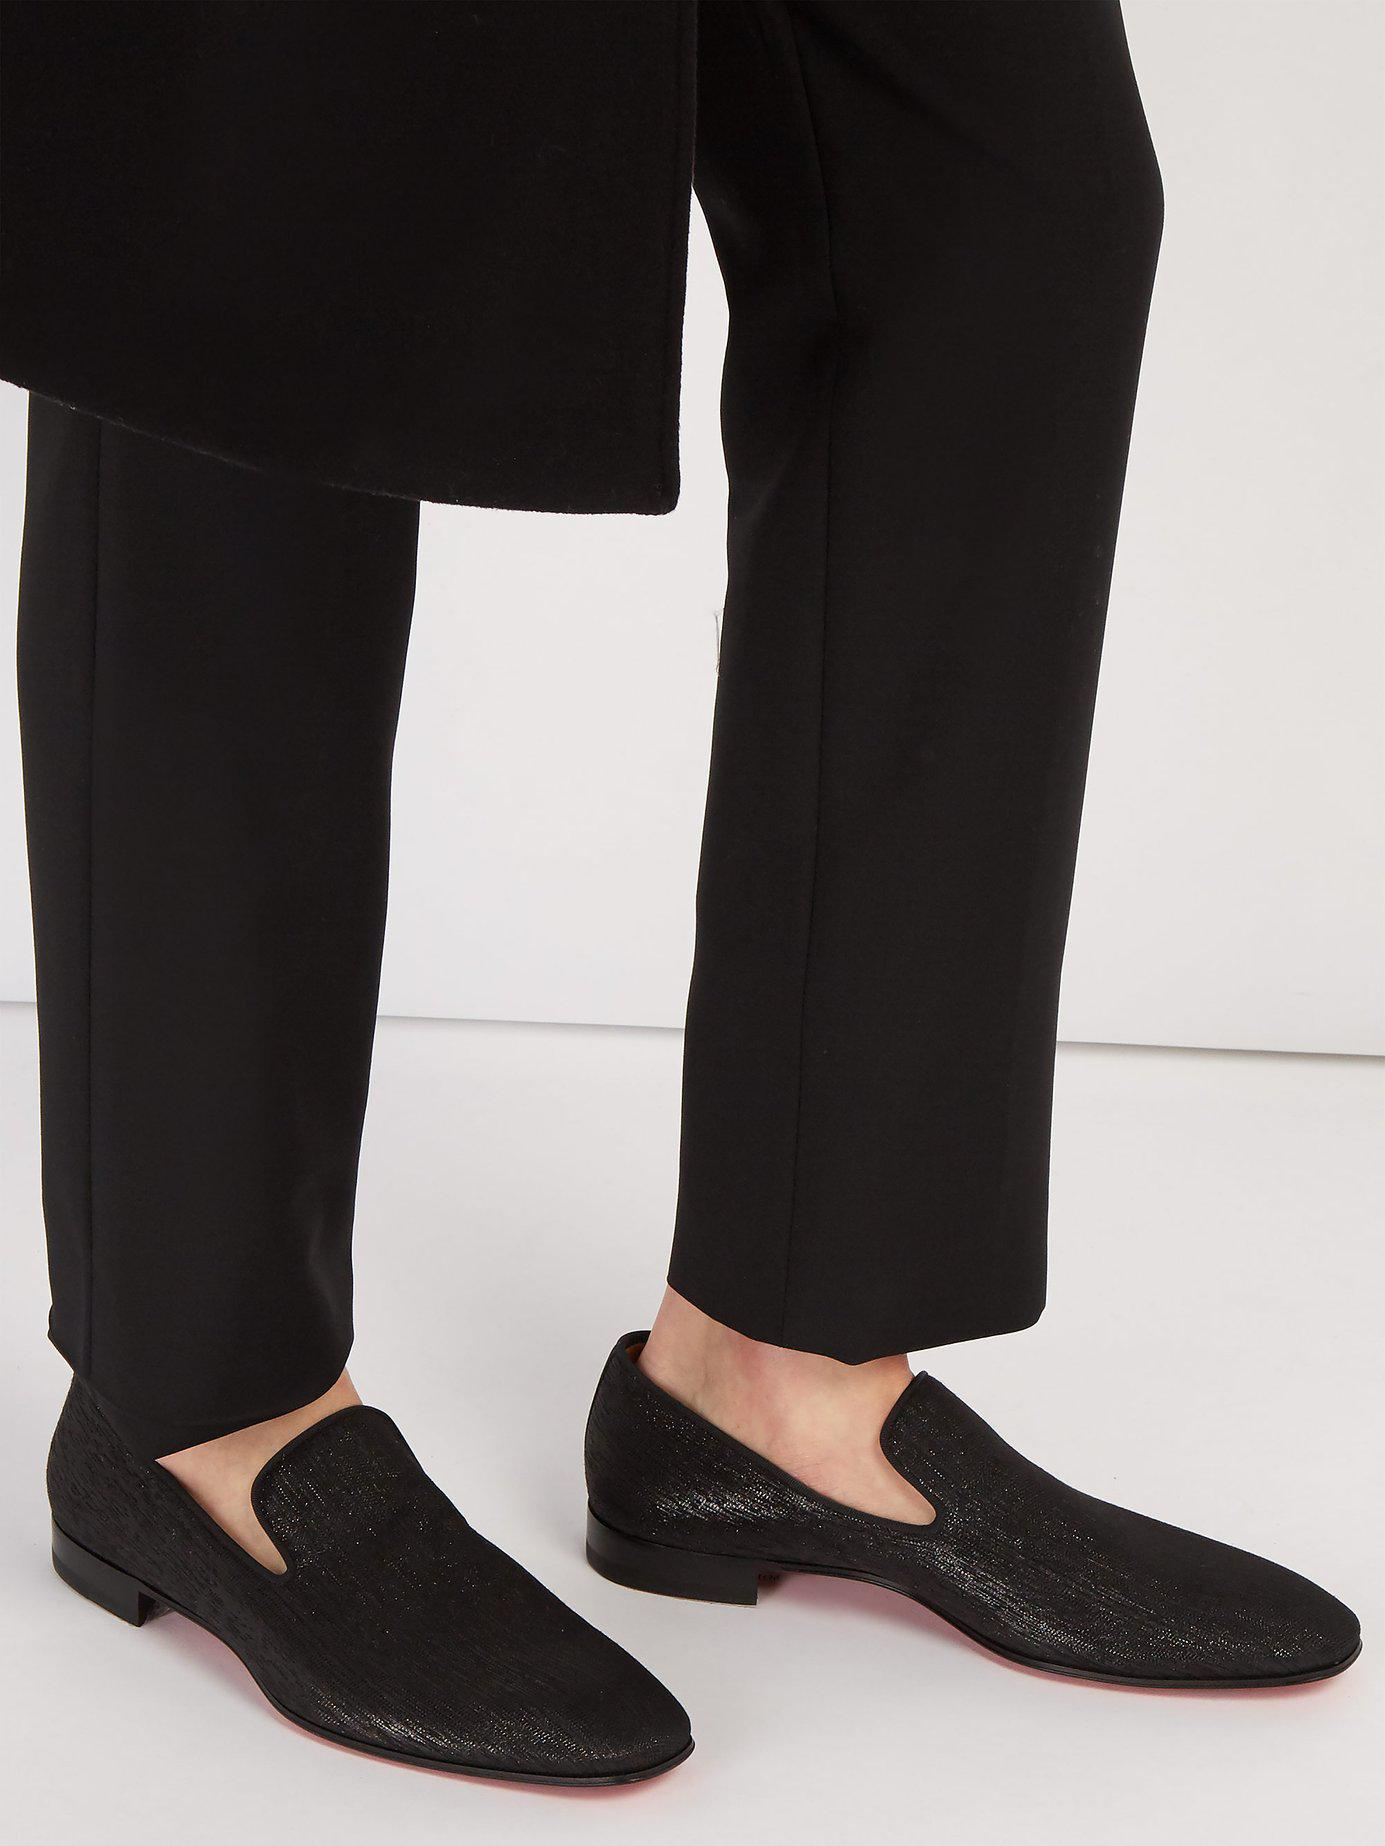 e394738eda44 Lyst - Christian Louboutin Dandelion Metallic Shantung Loafers in Black for  Men